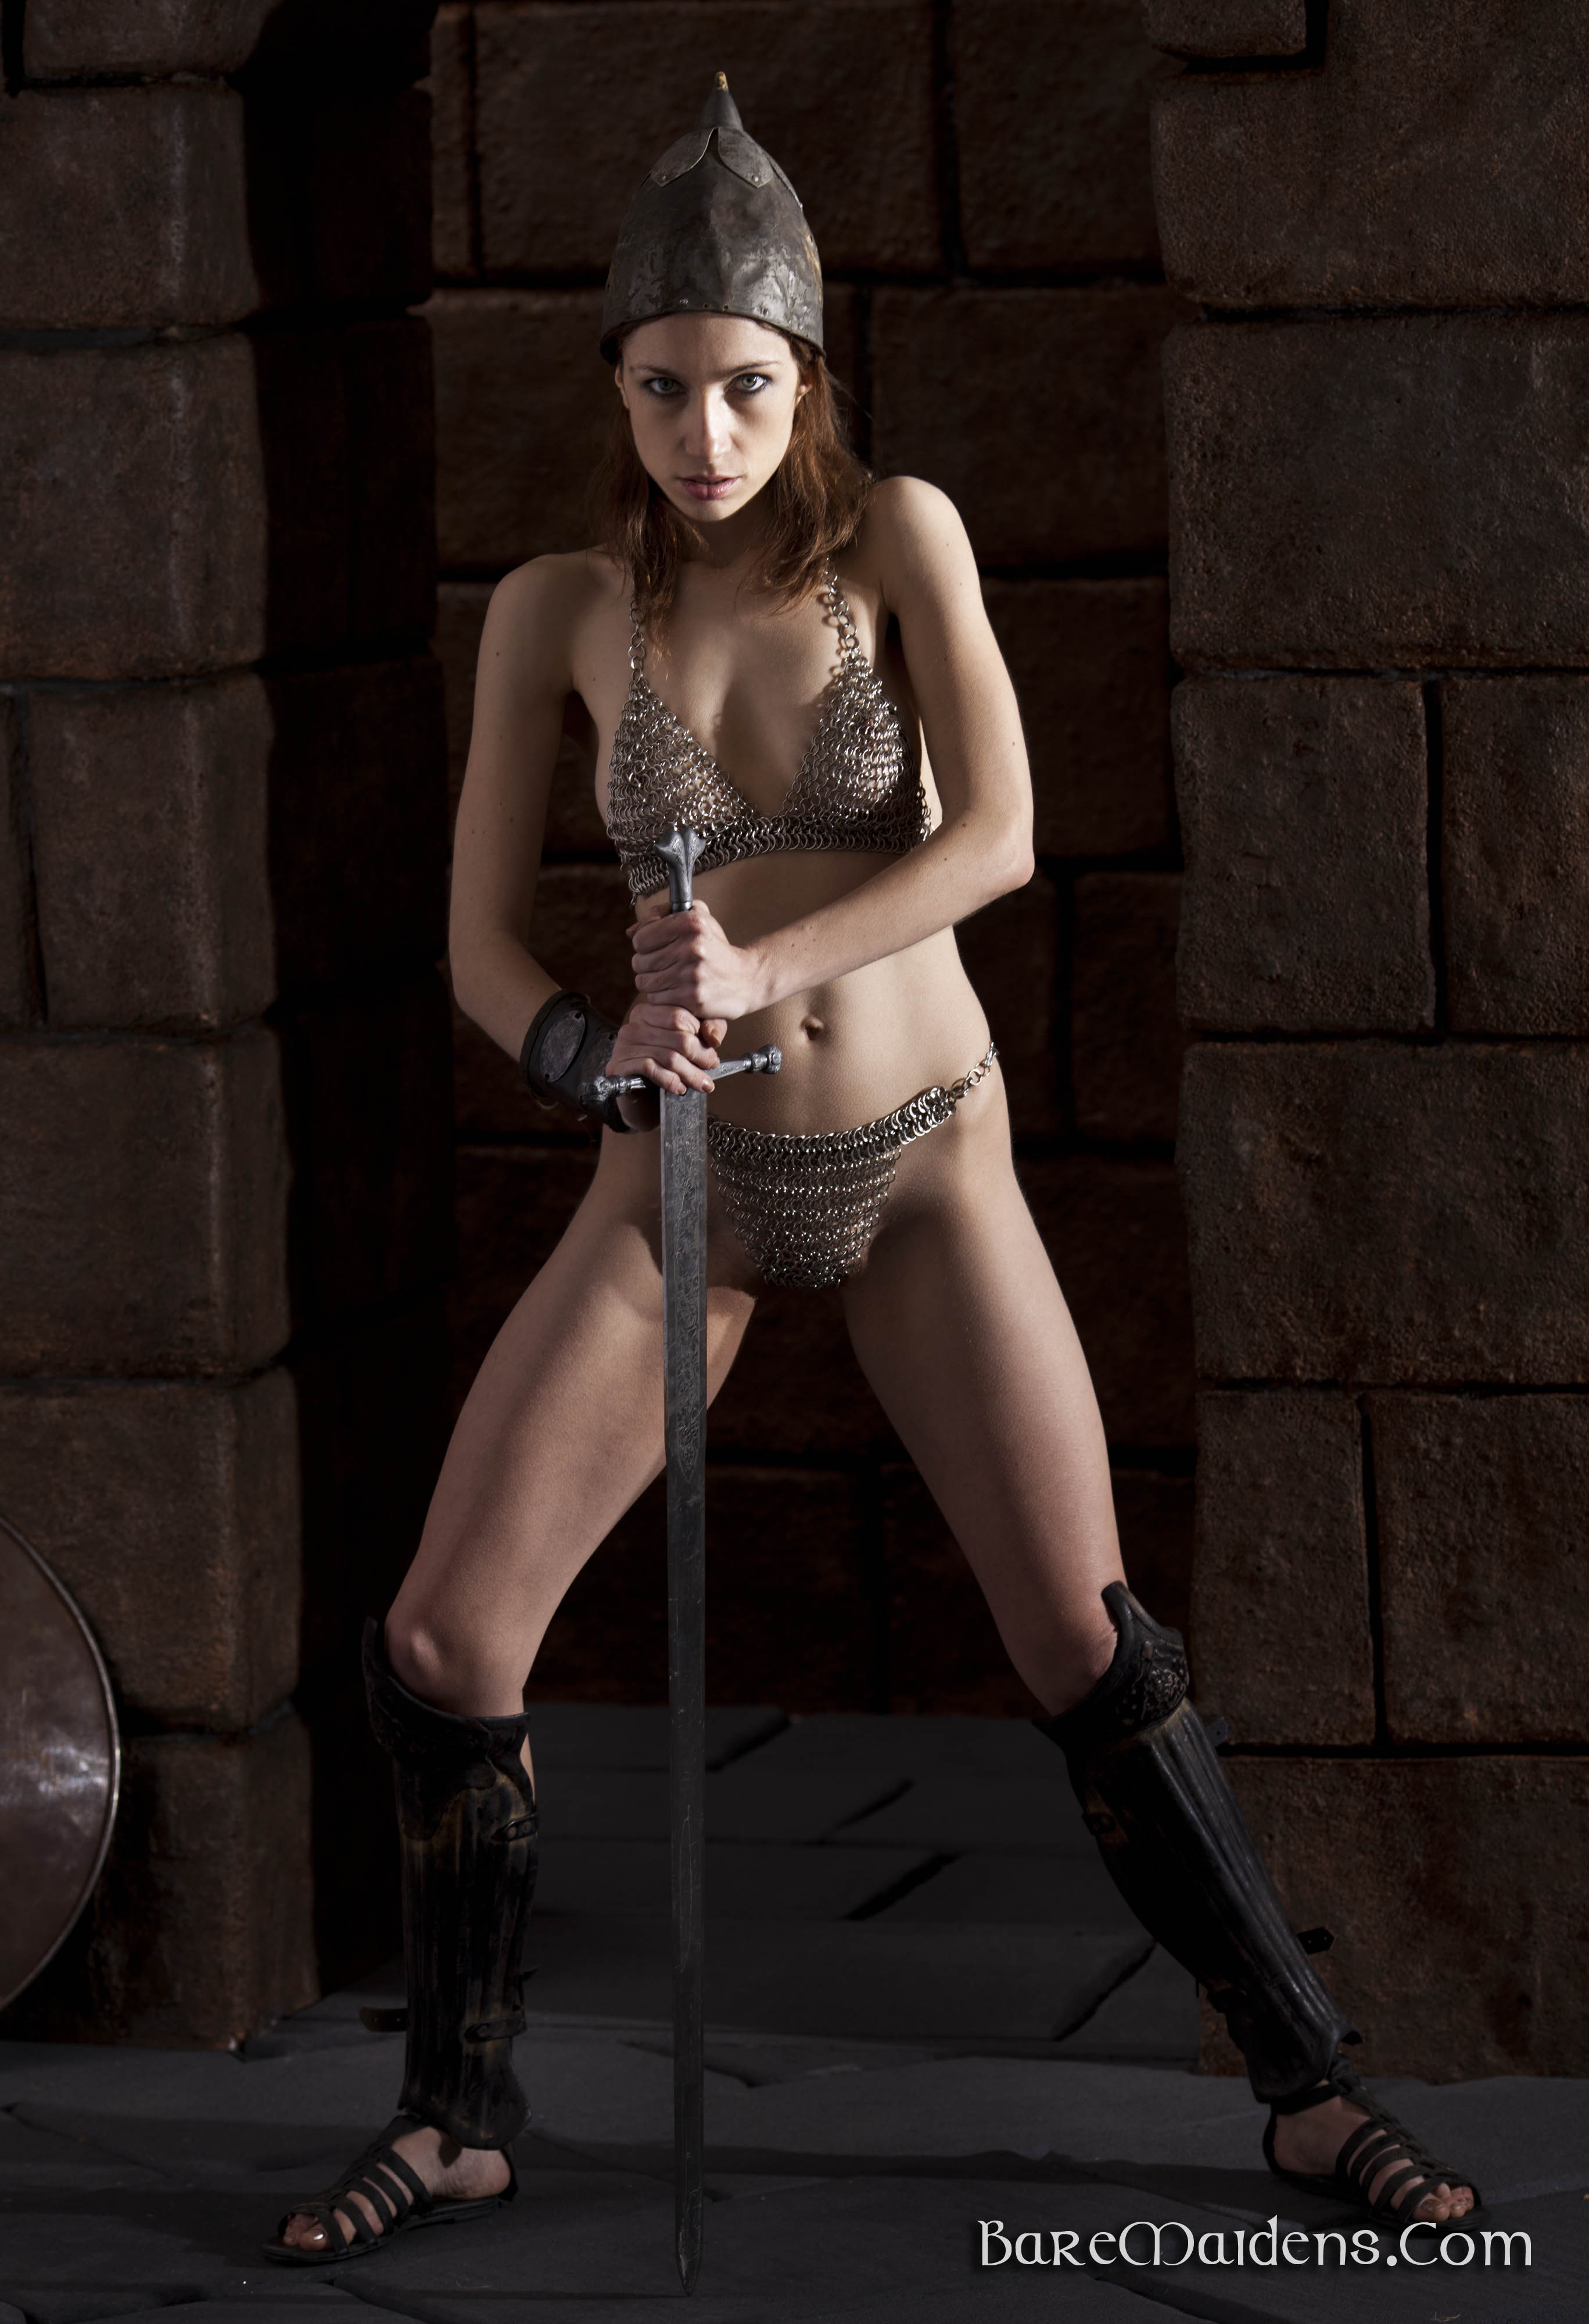 Medieval cosplay nude pornos galleries